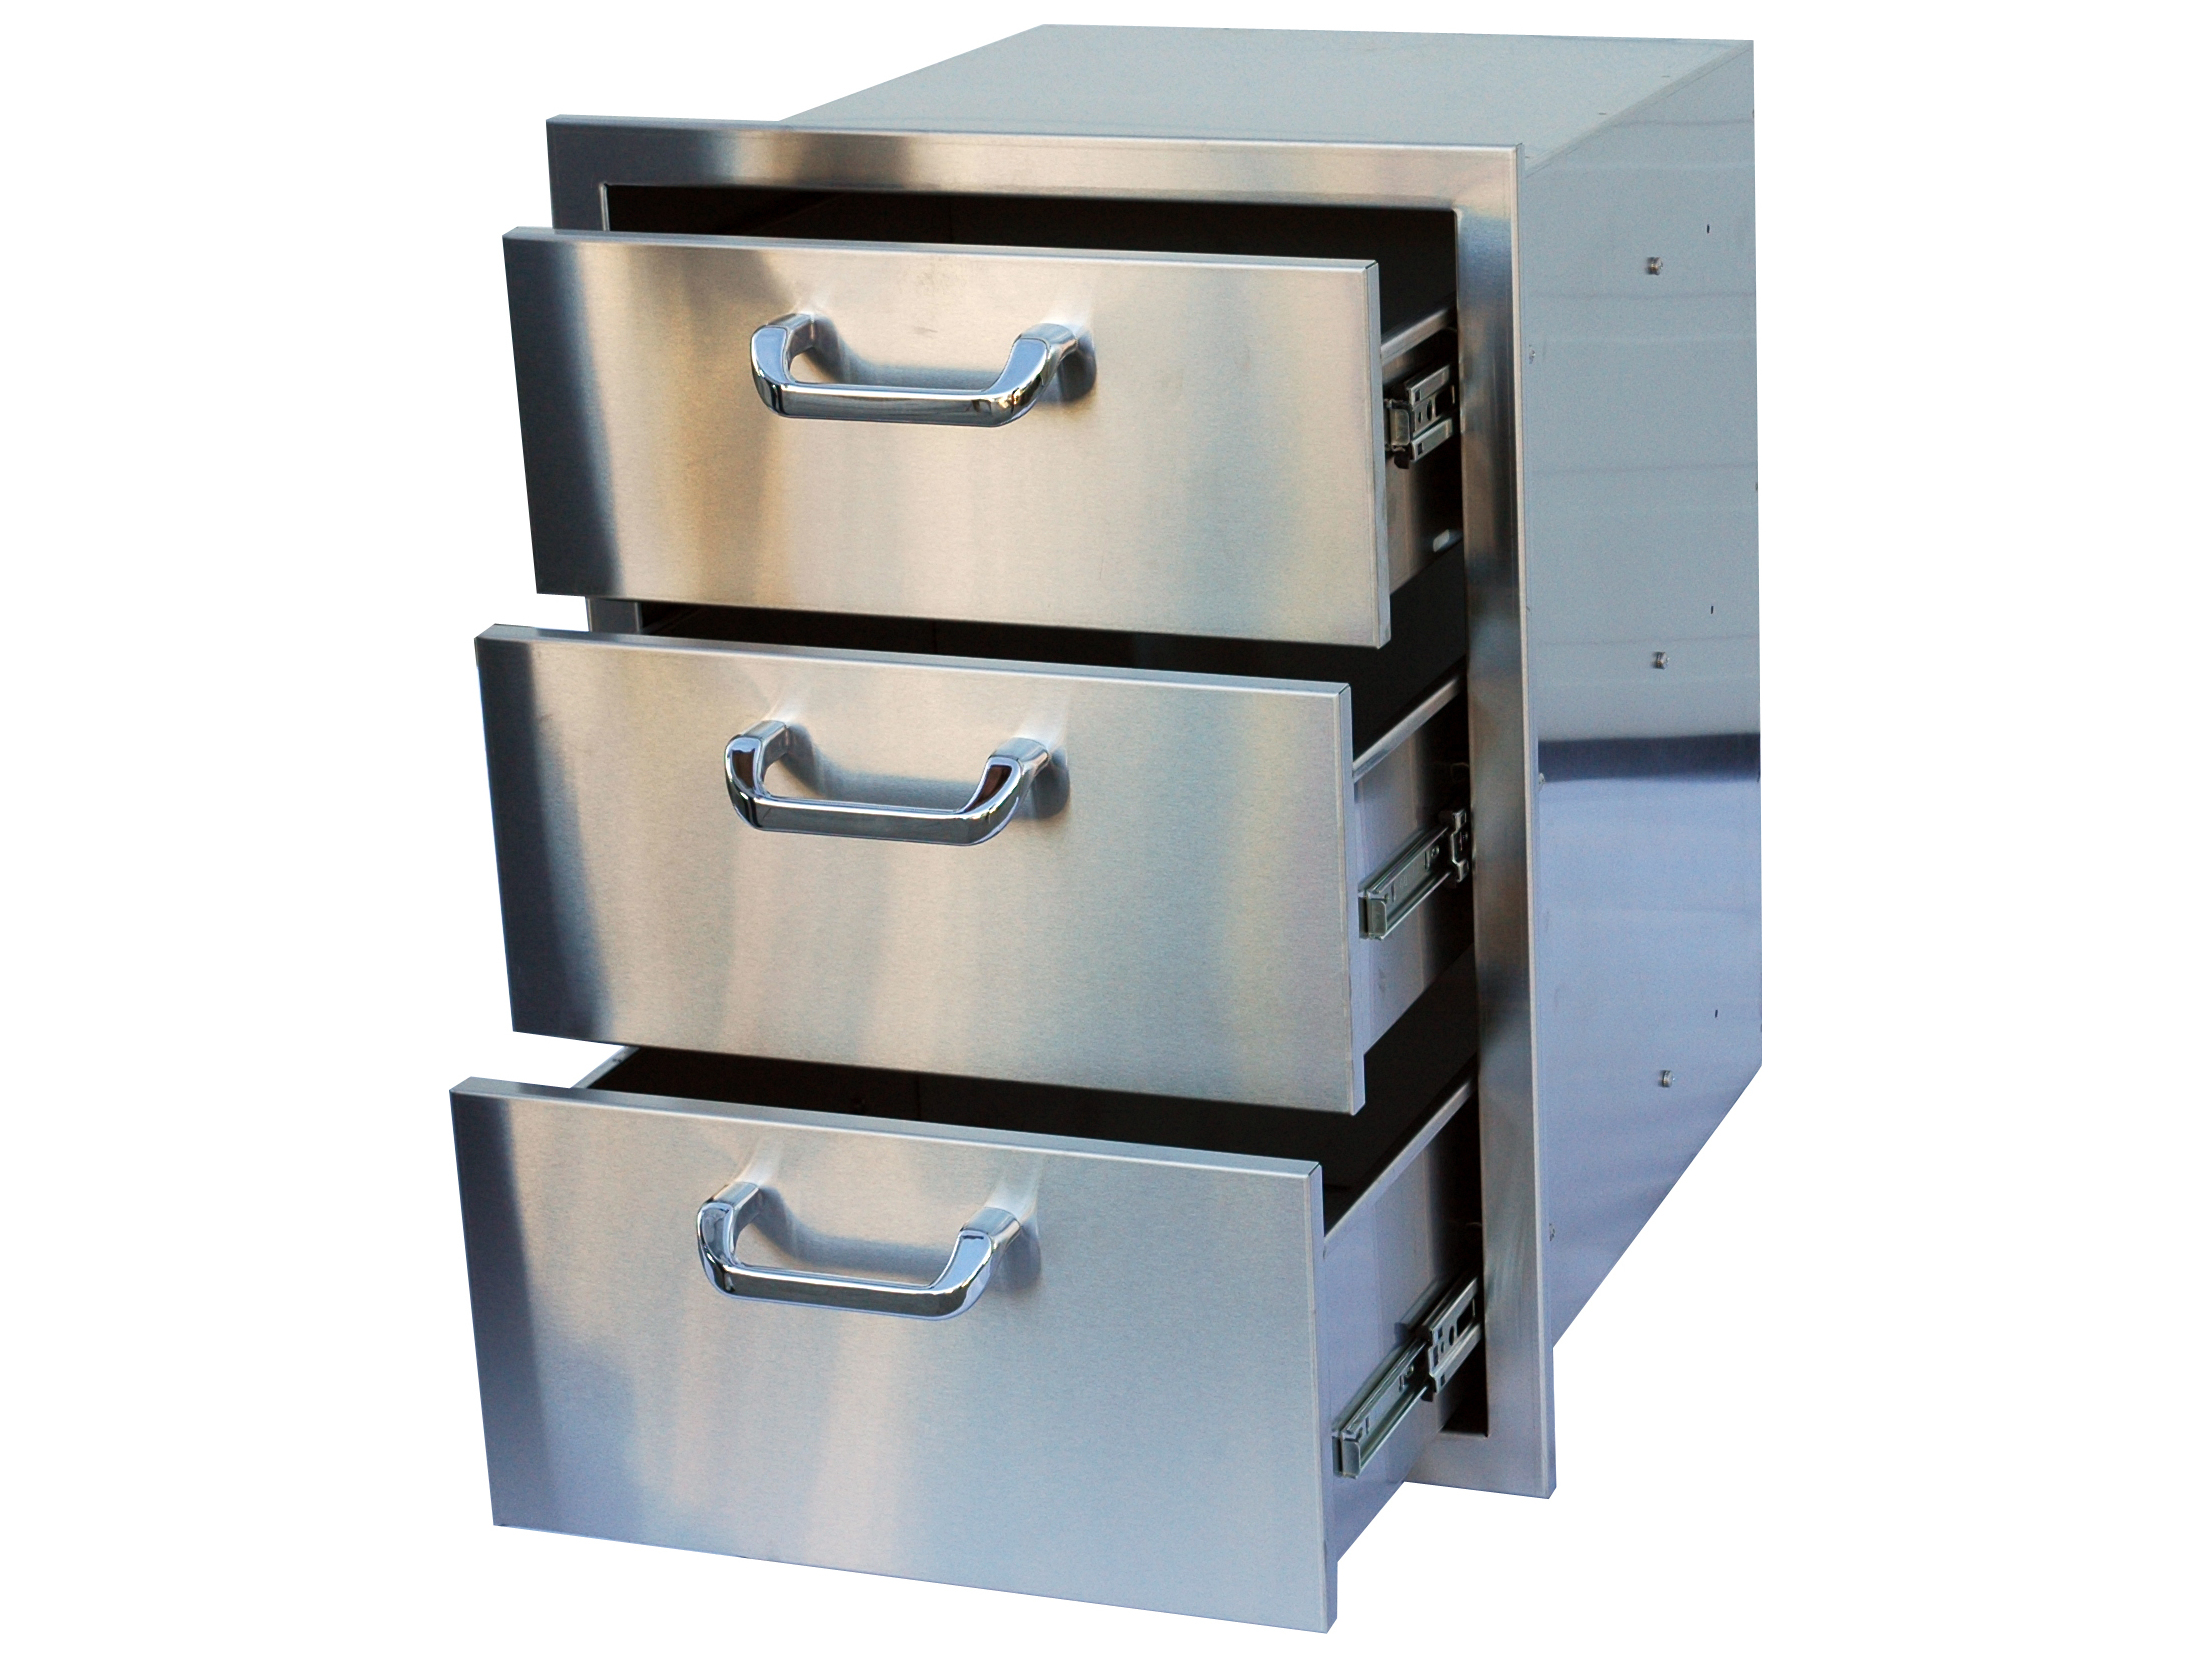 stainless steel kitchen cart with drawers bosch suite outdoor greatroom 3 drawer storage 3drw